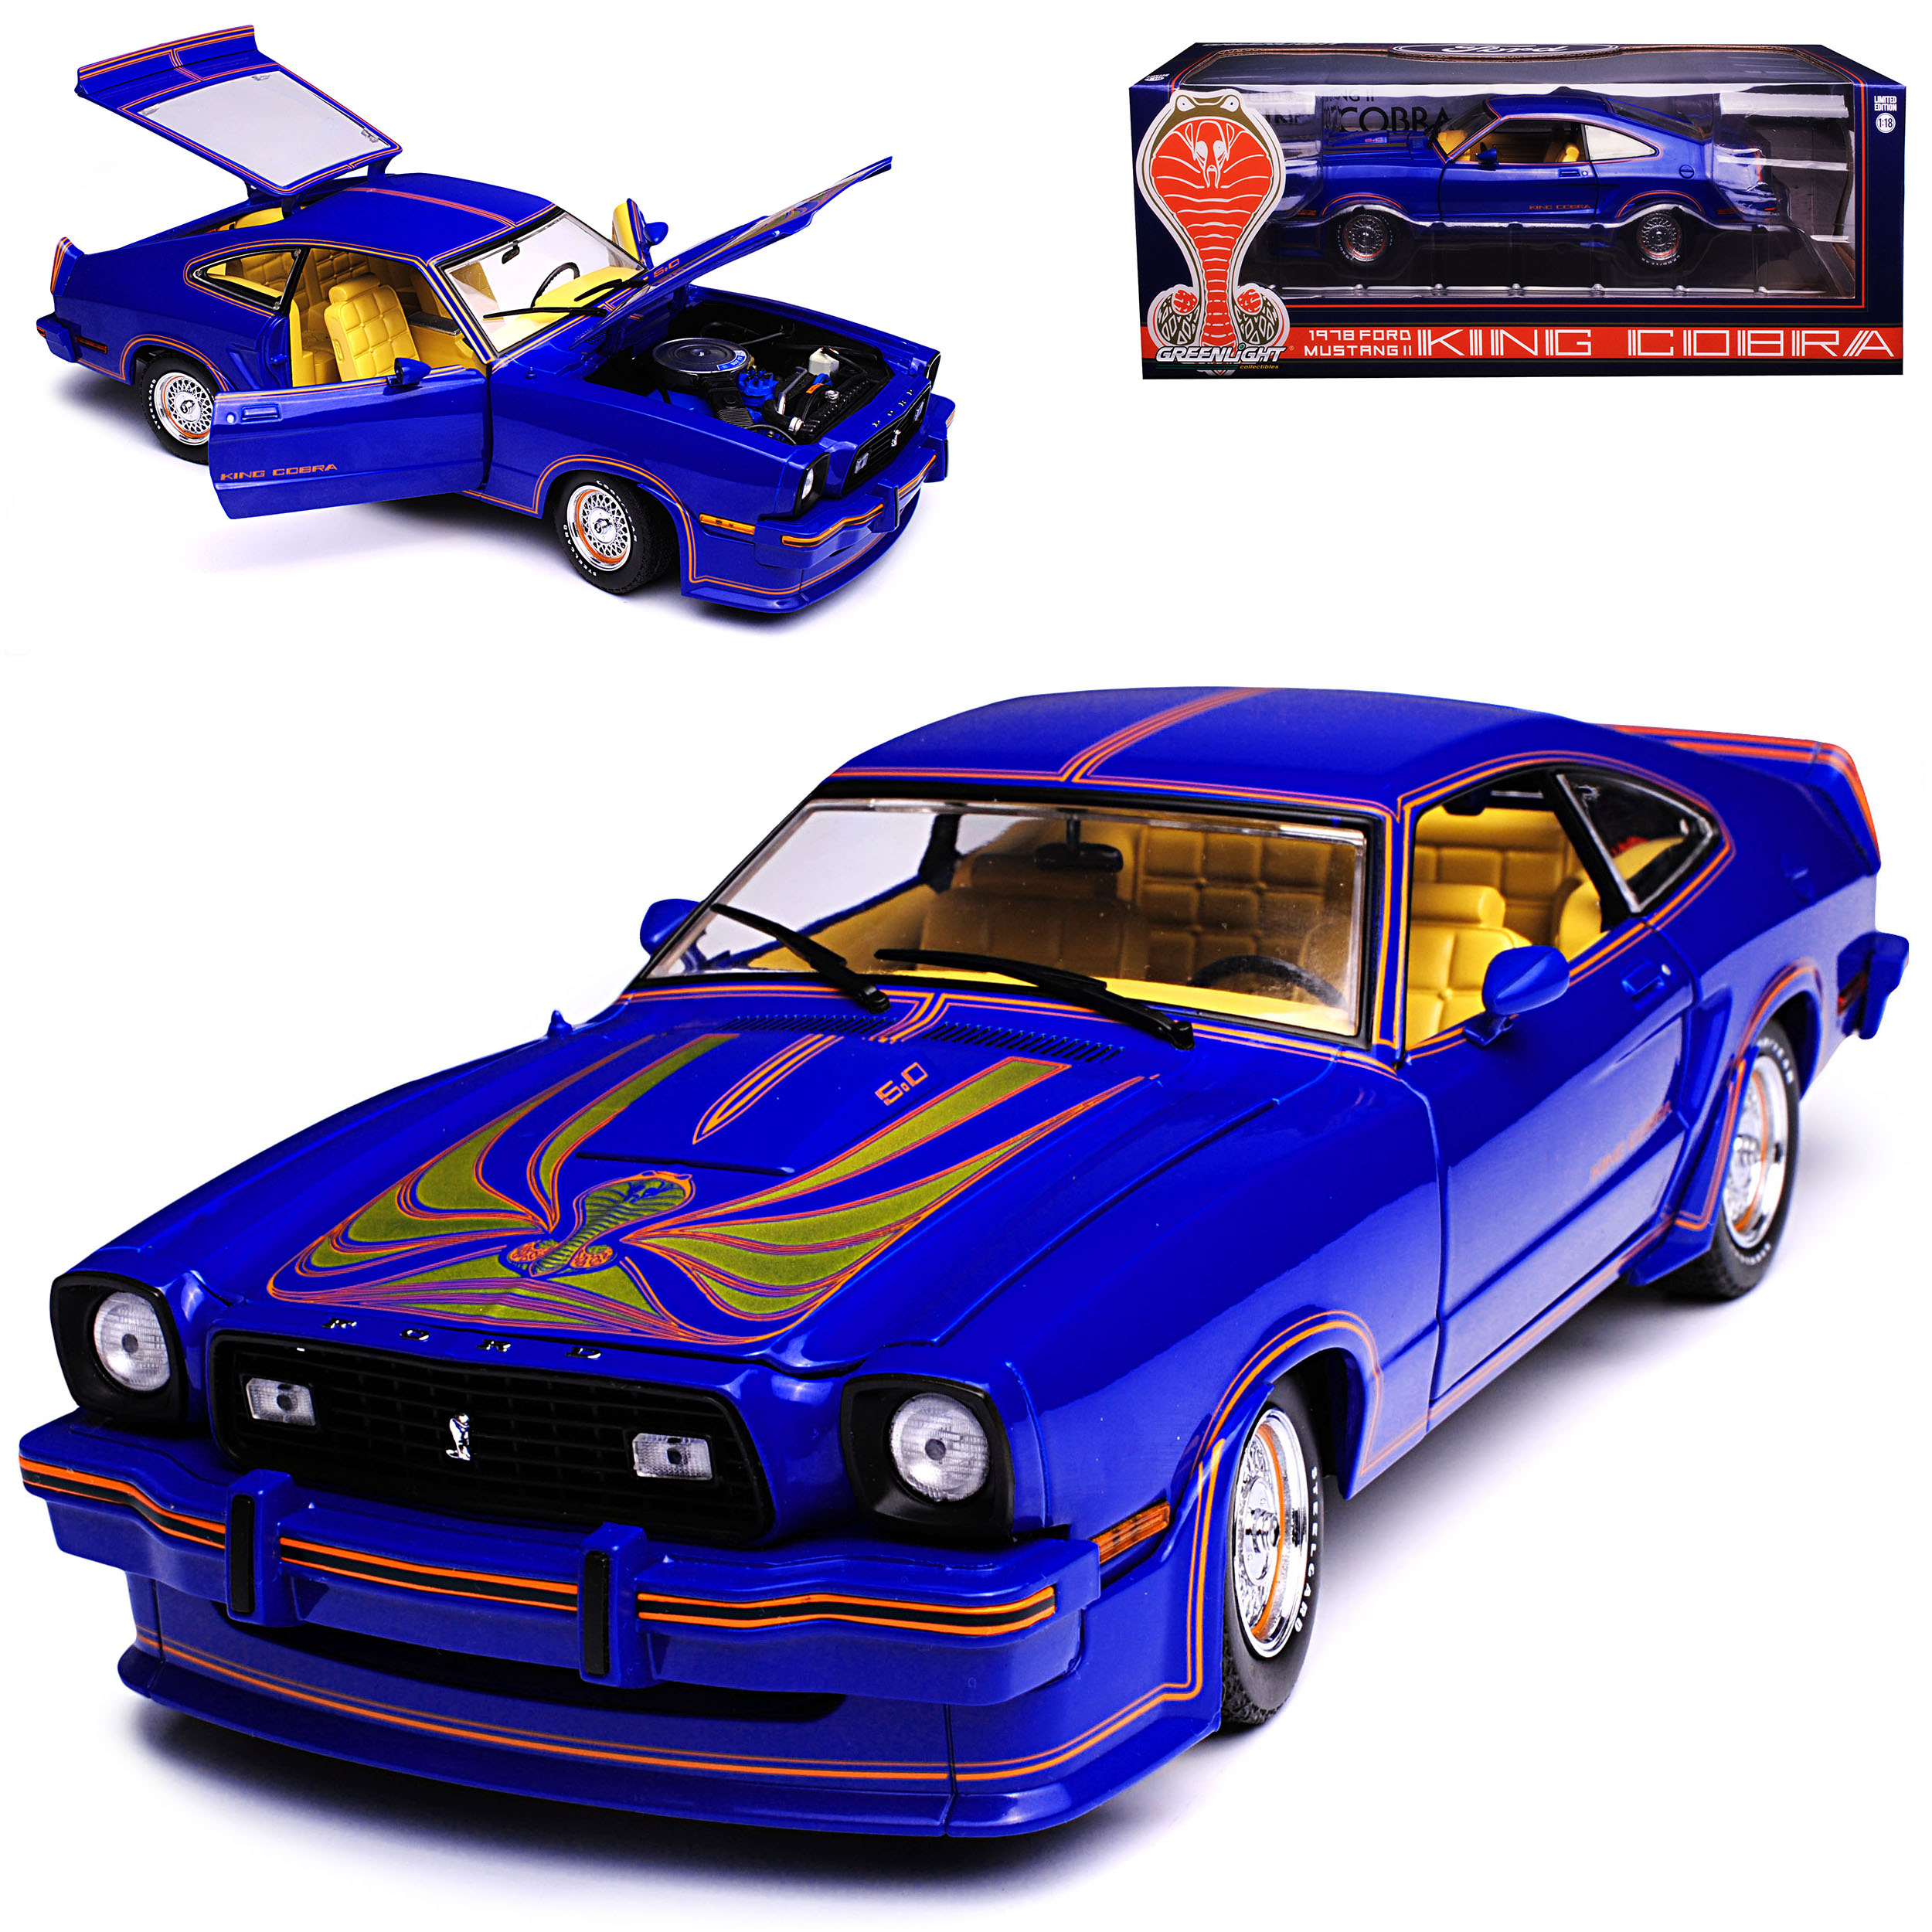 FORD Mustang II COUPE BLU Shelby Shelby Shelby King Cobra 2. Generation 1973-1978 1/18 GREE  0e6d63